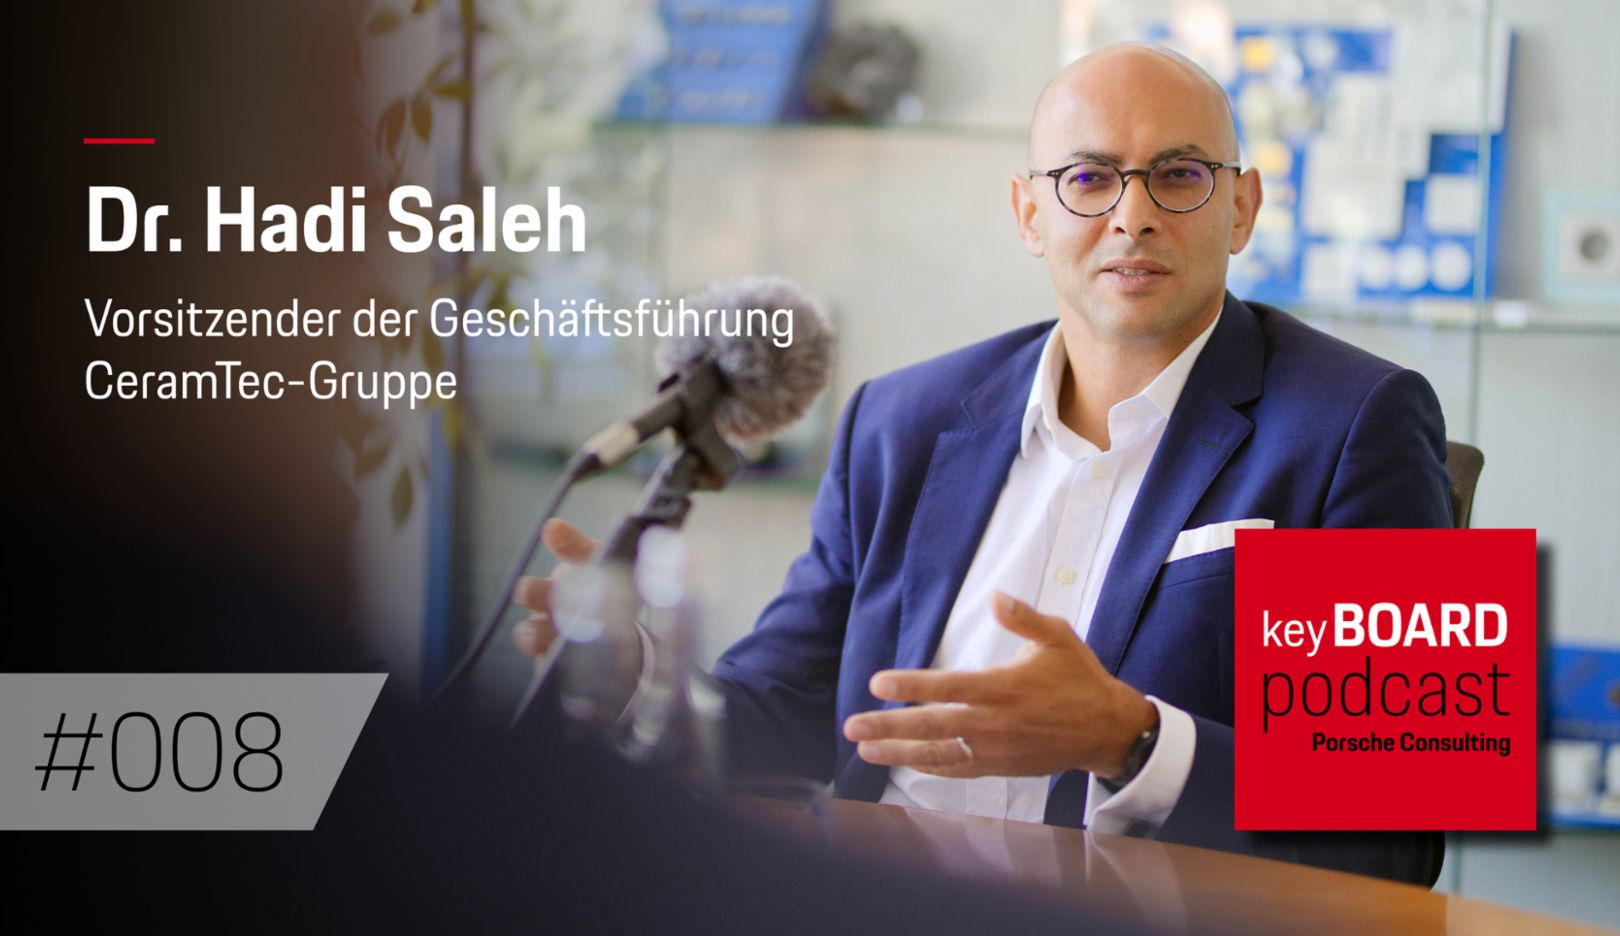 Porsche Consulting Podcast #008: Dr. Hadi Saleh